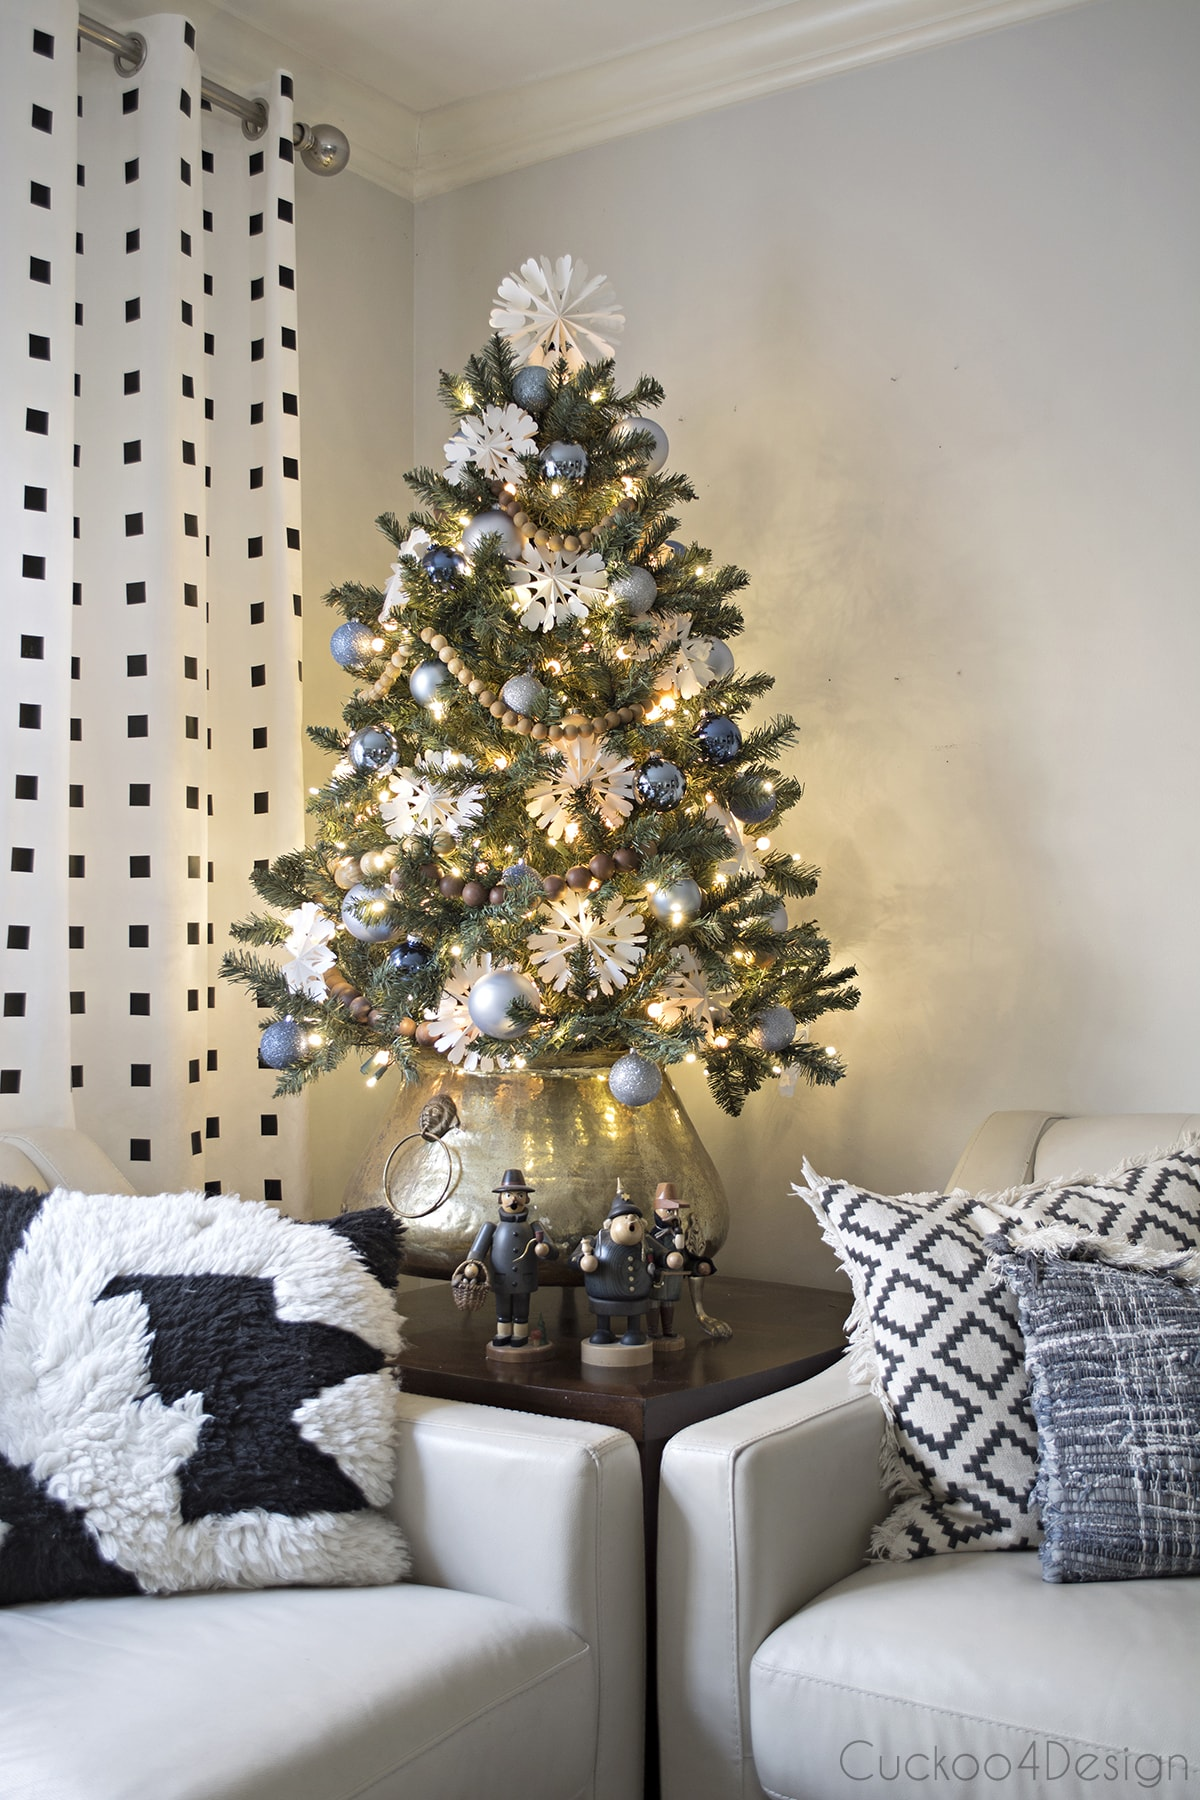 my favorite artificial Christmas trees | blue, white and gold Christmas decor with white snowflakes